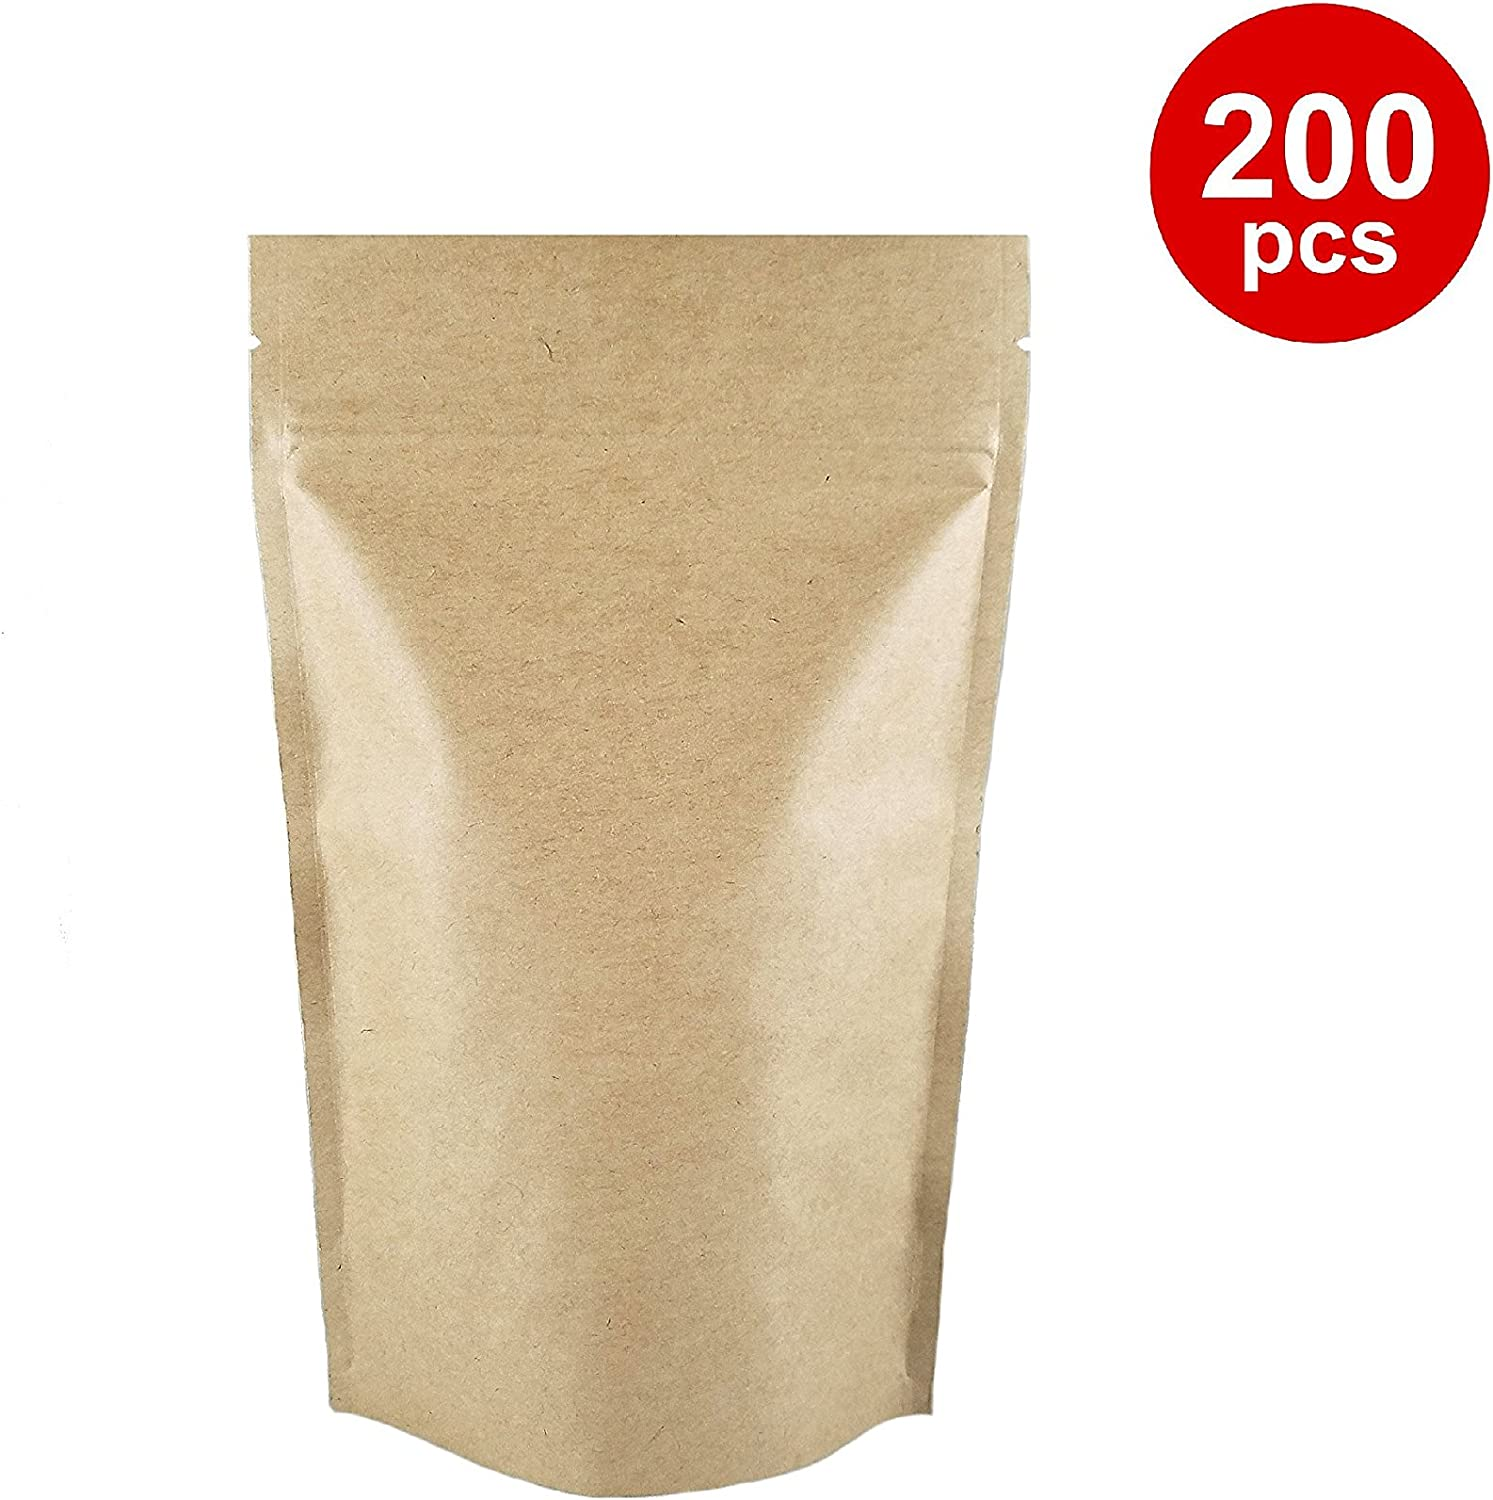 Korpack Kraft Stand Up Pouch with Zipper 5 X 8 X 2.5 inches (4oz) 200 pcs